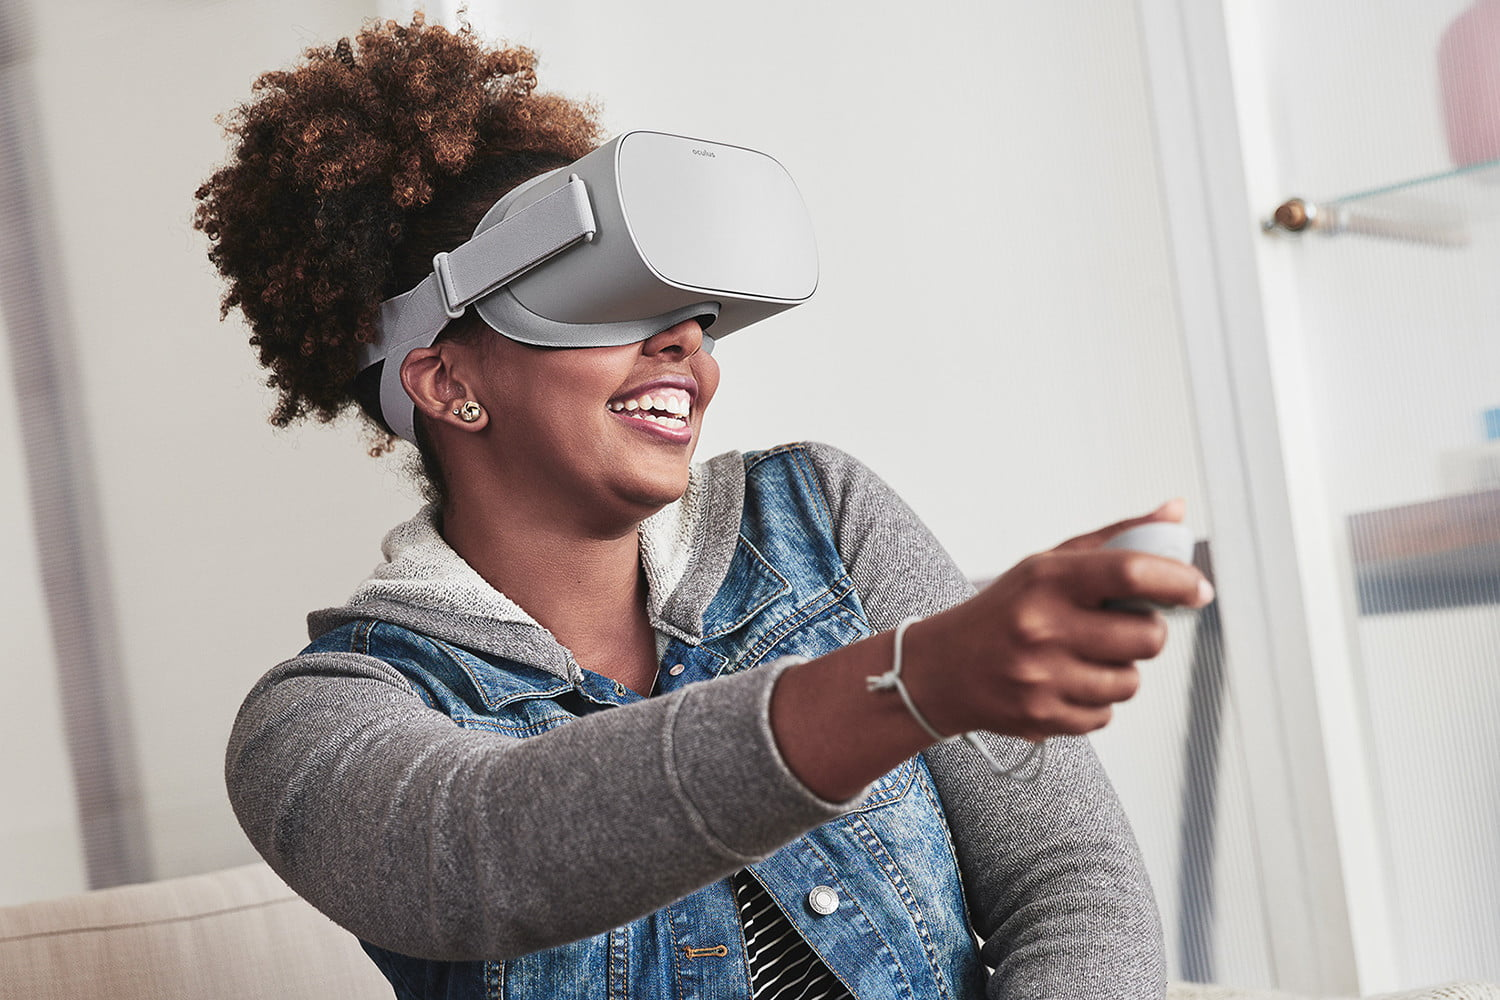 Virtual or augmented? Reality to the nth degree